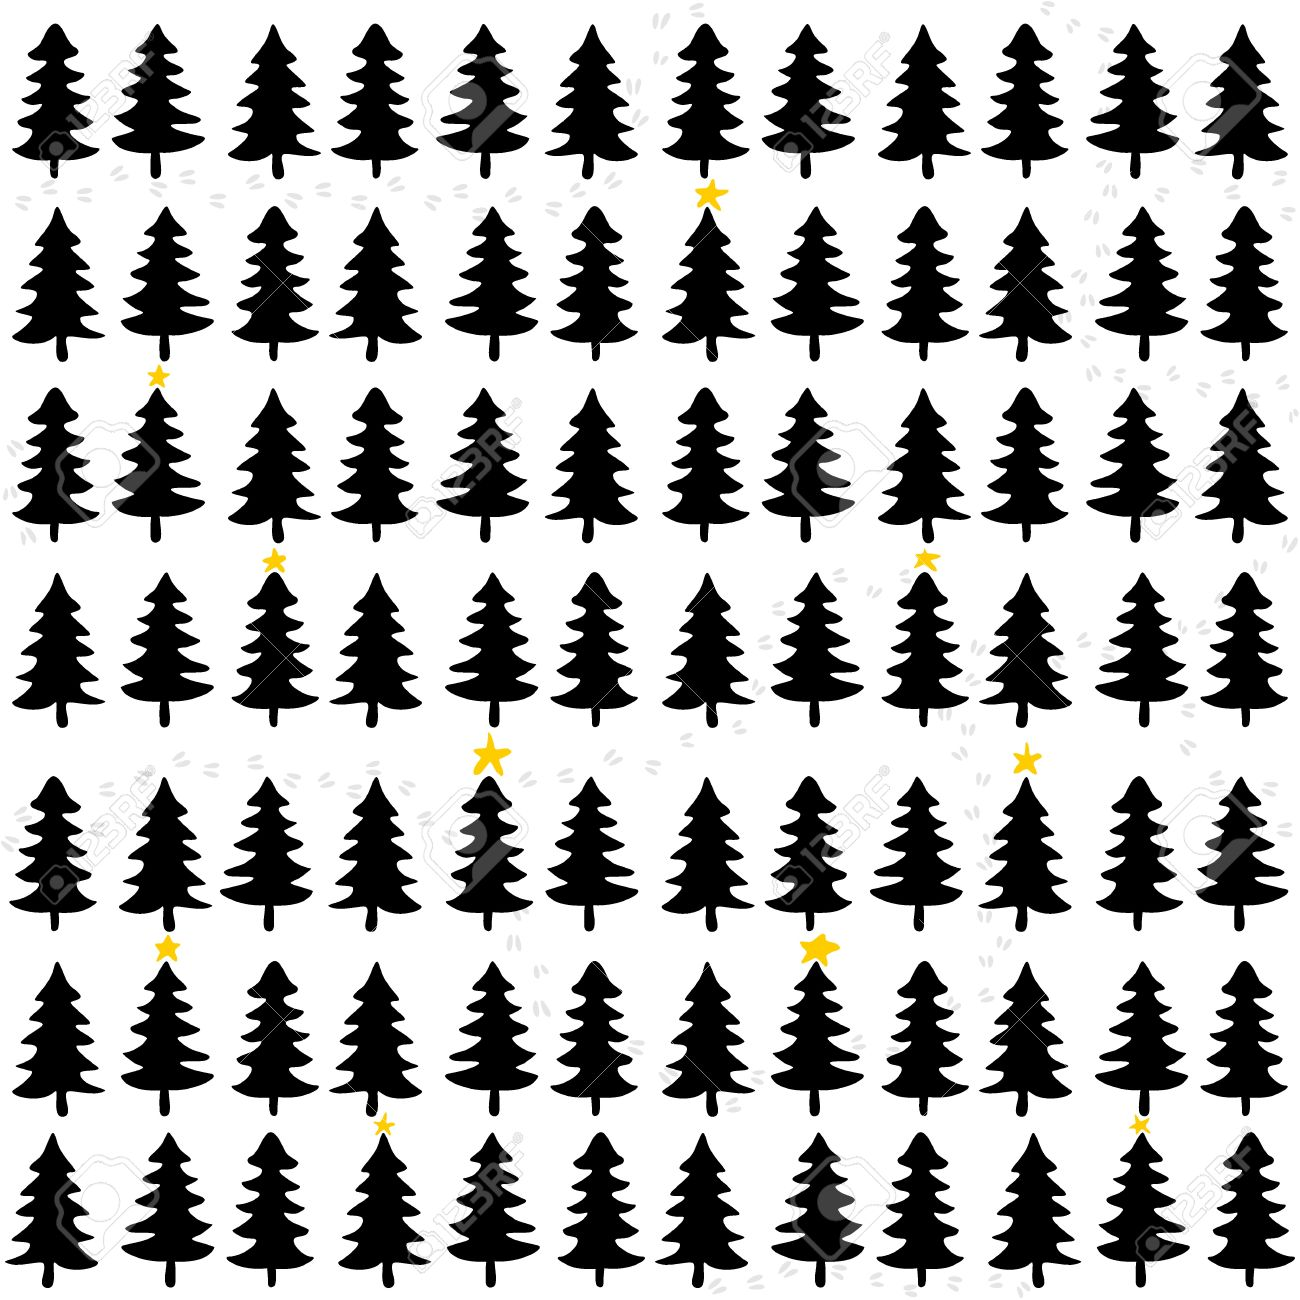 Cool Snow Background Clipart Black And for Snow Background Clipart Black And White  166kxo